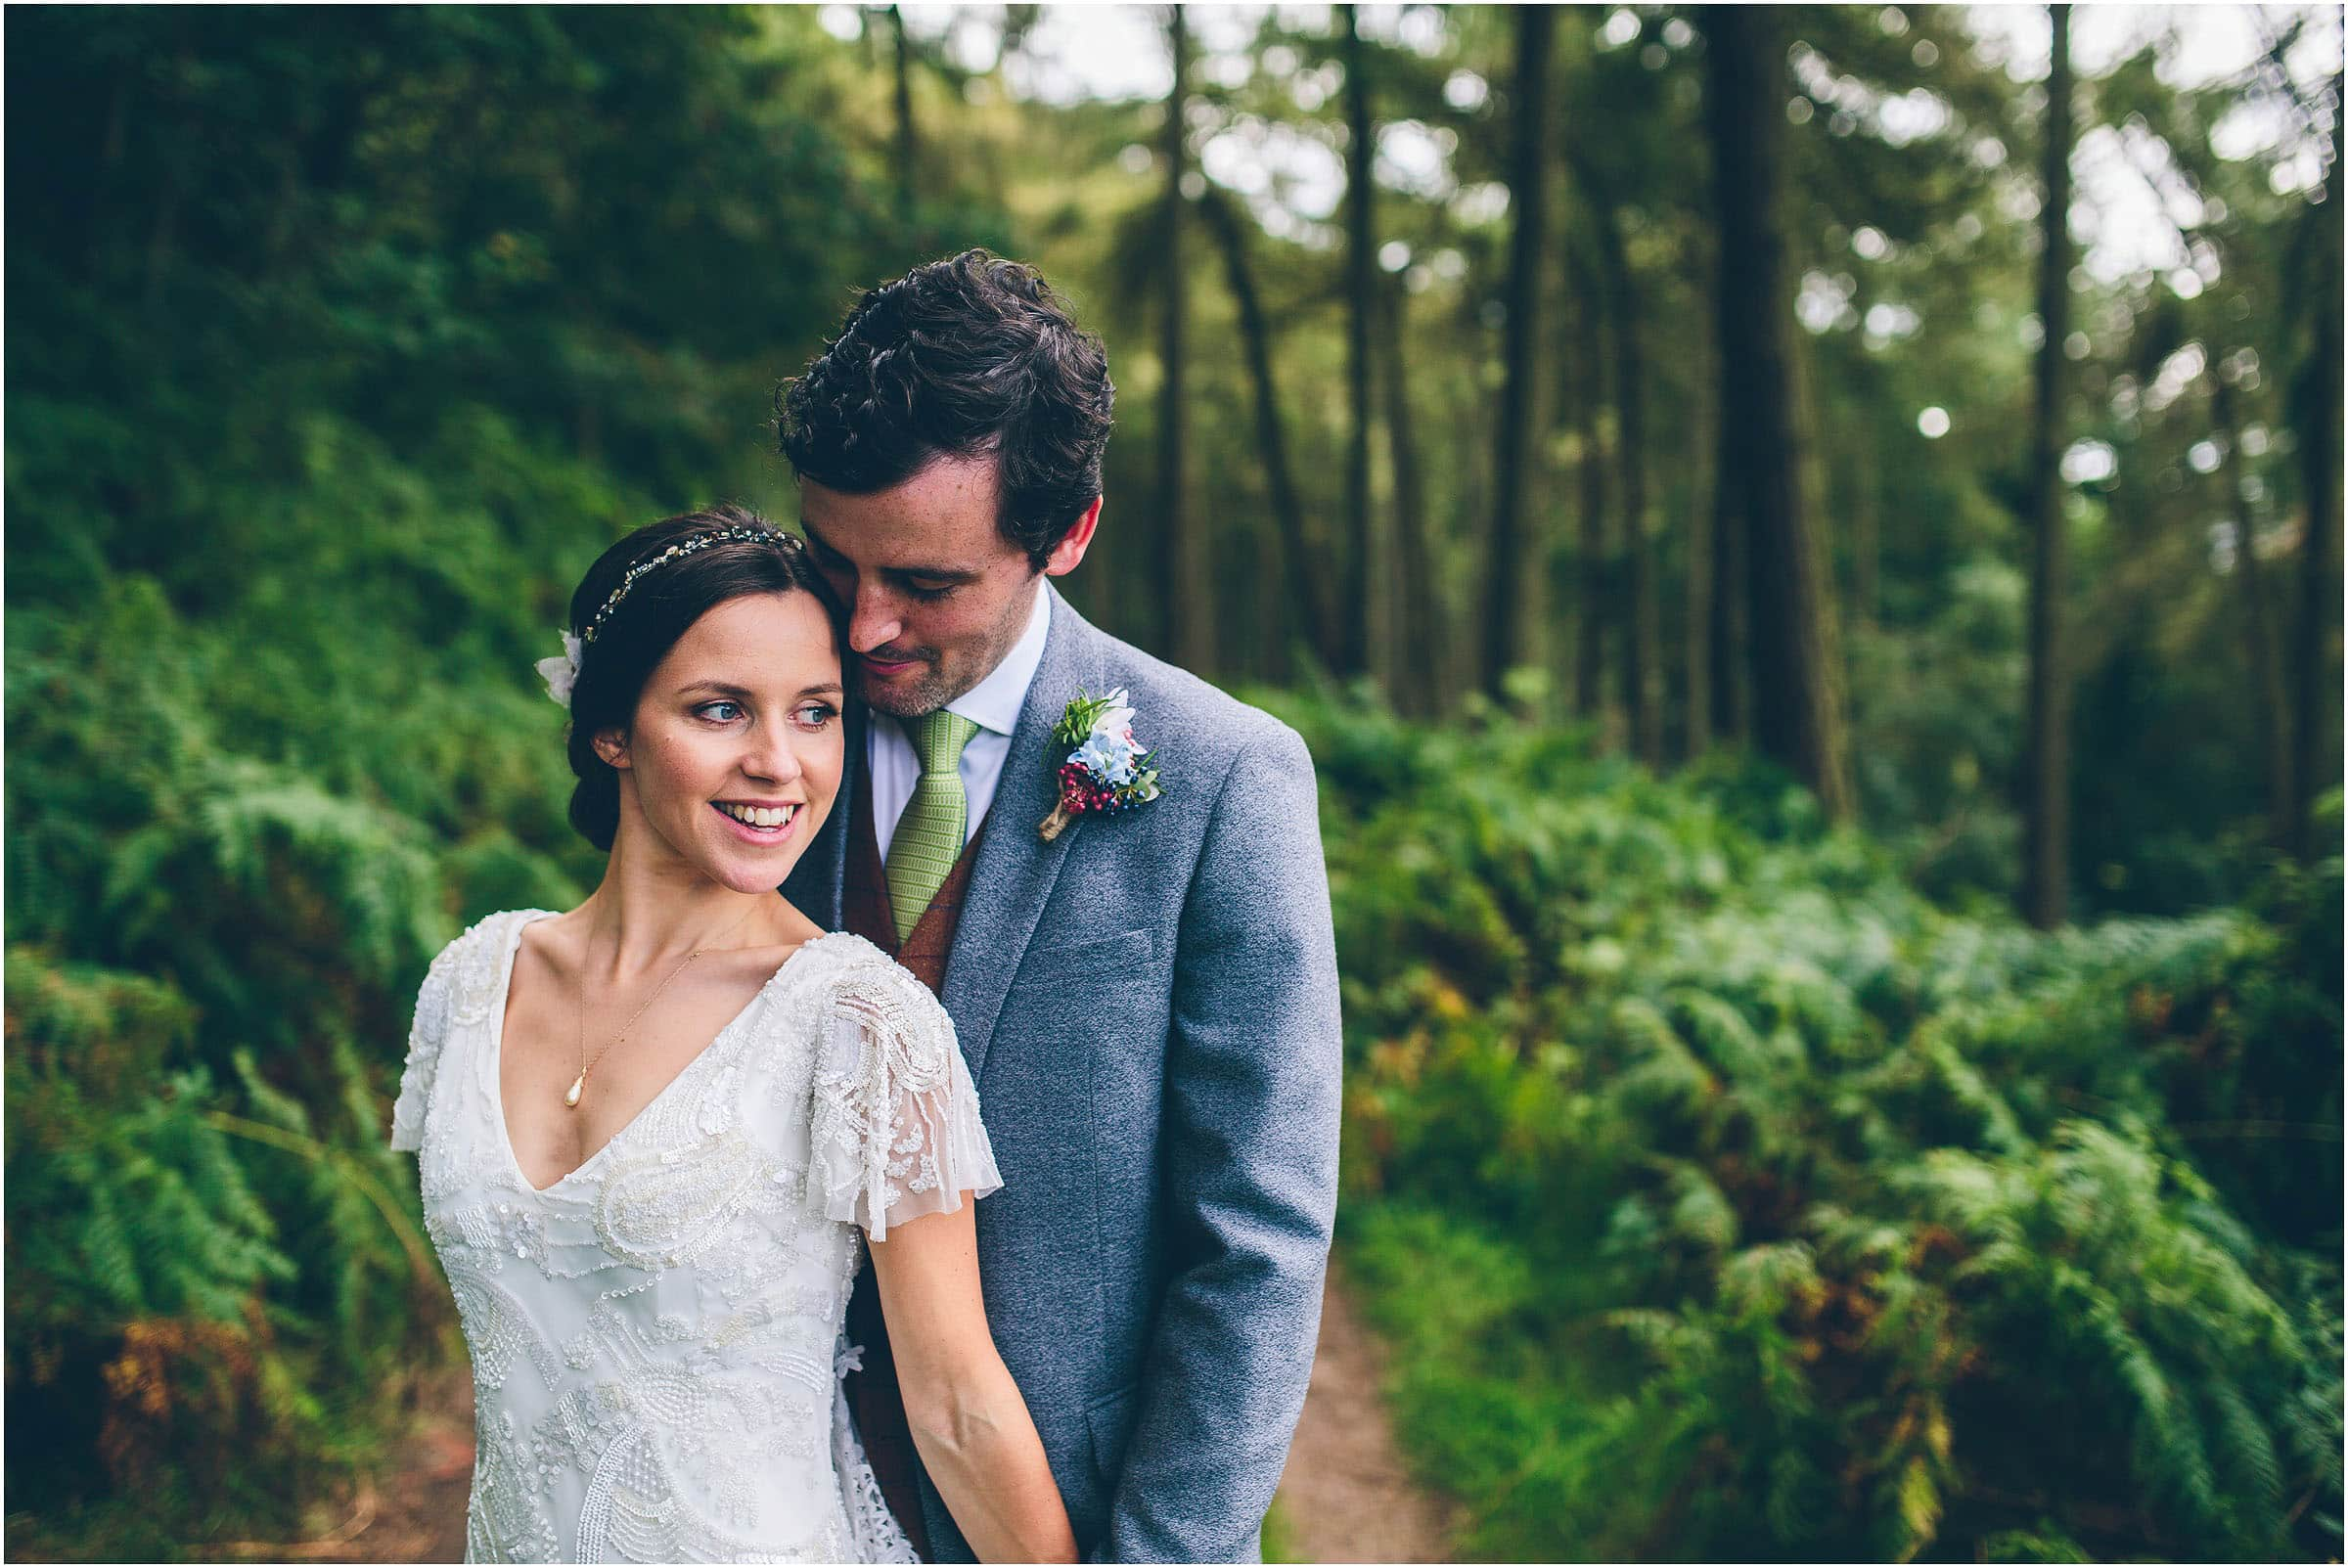 Harthill_Weddings_Wedding_Photography_0072